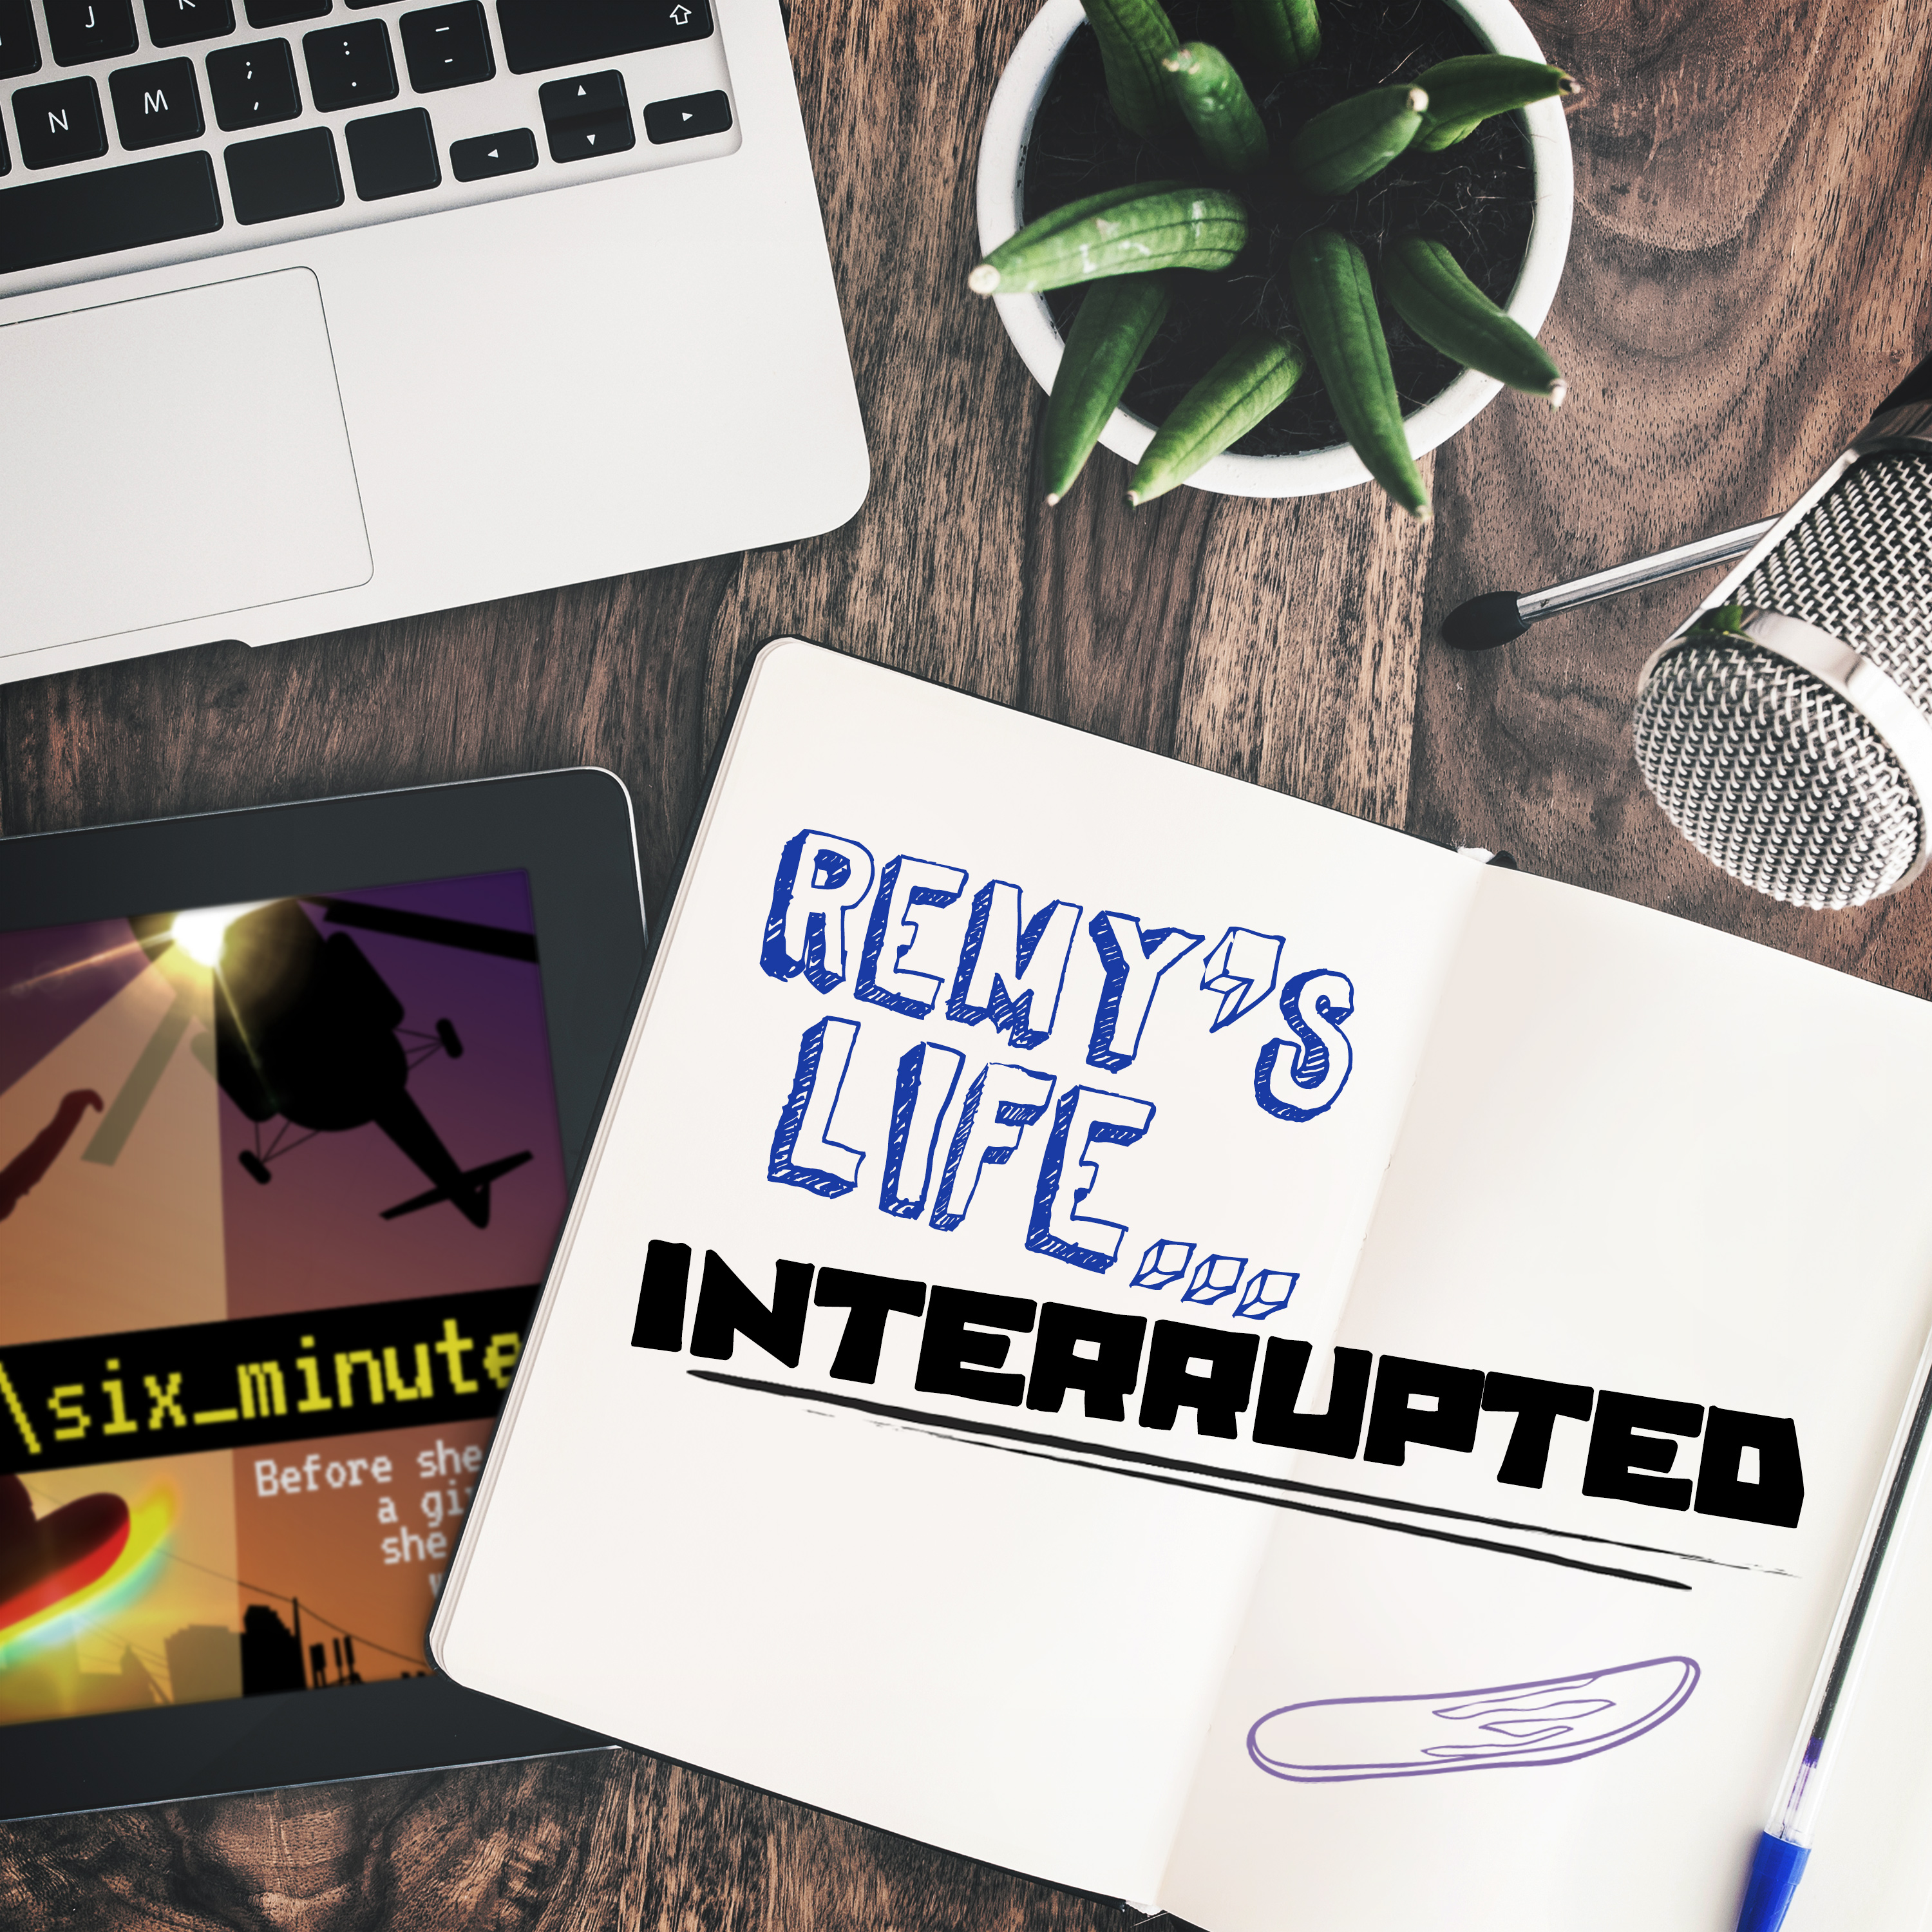 Remy's Life Interrupted: EP65